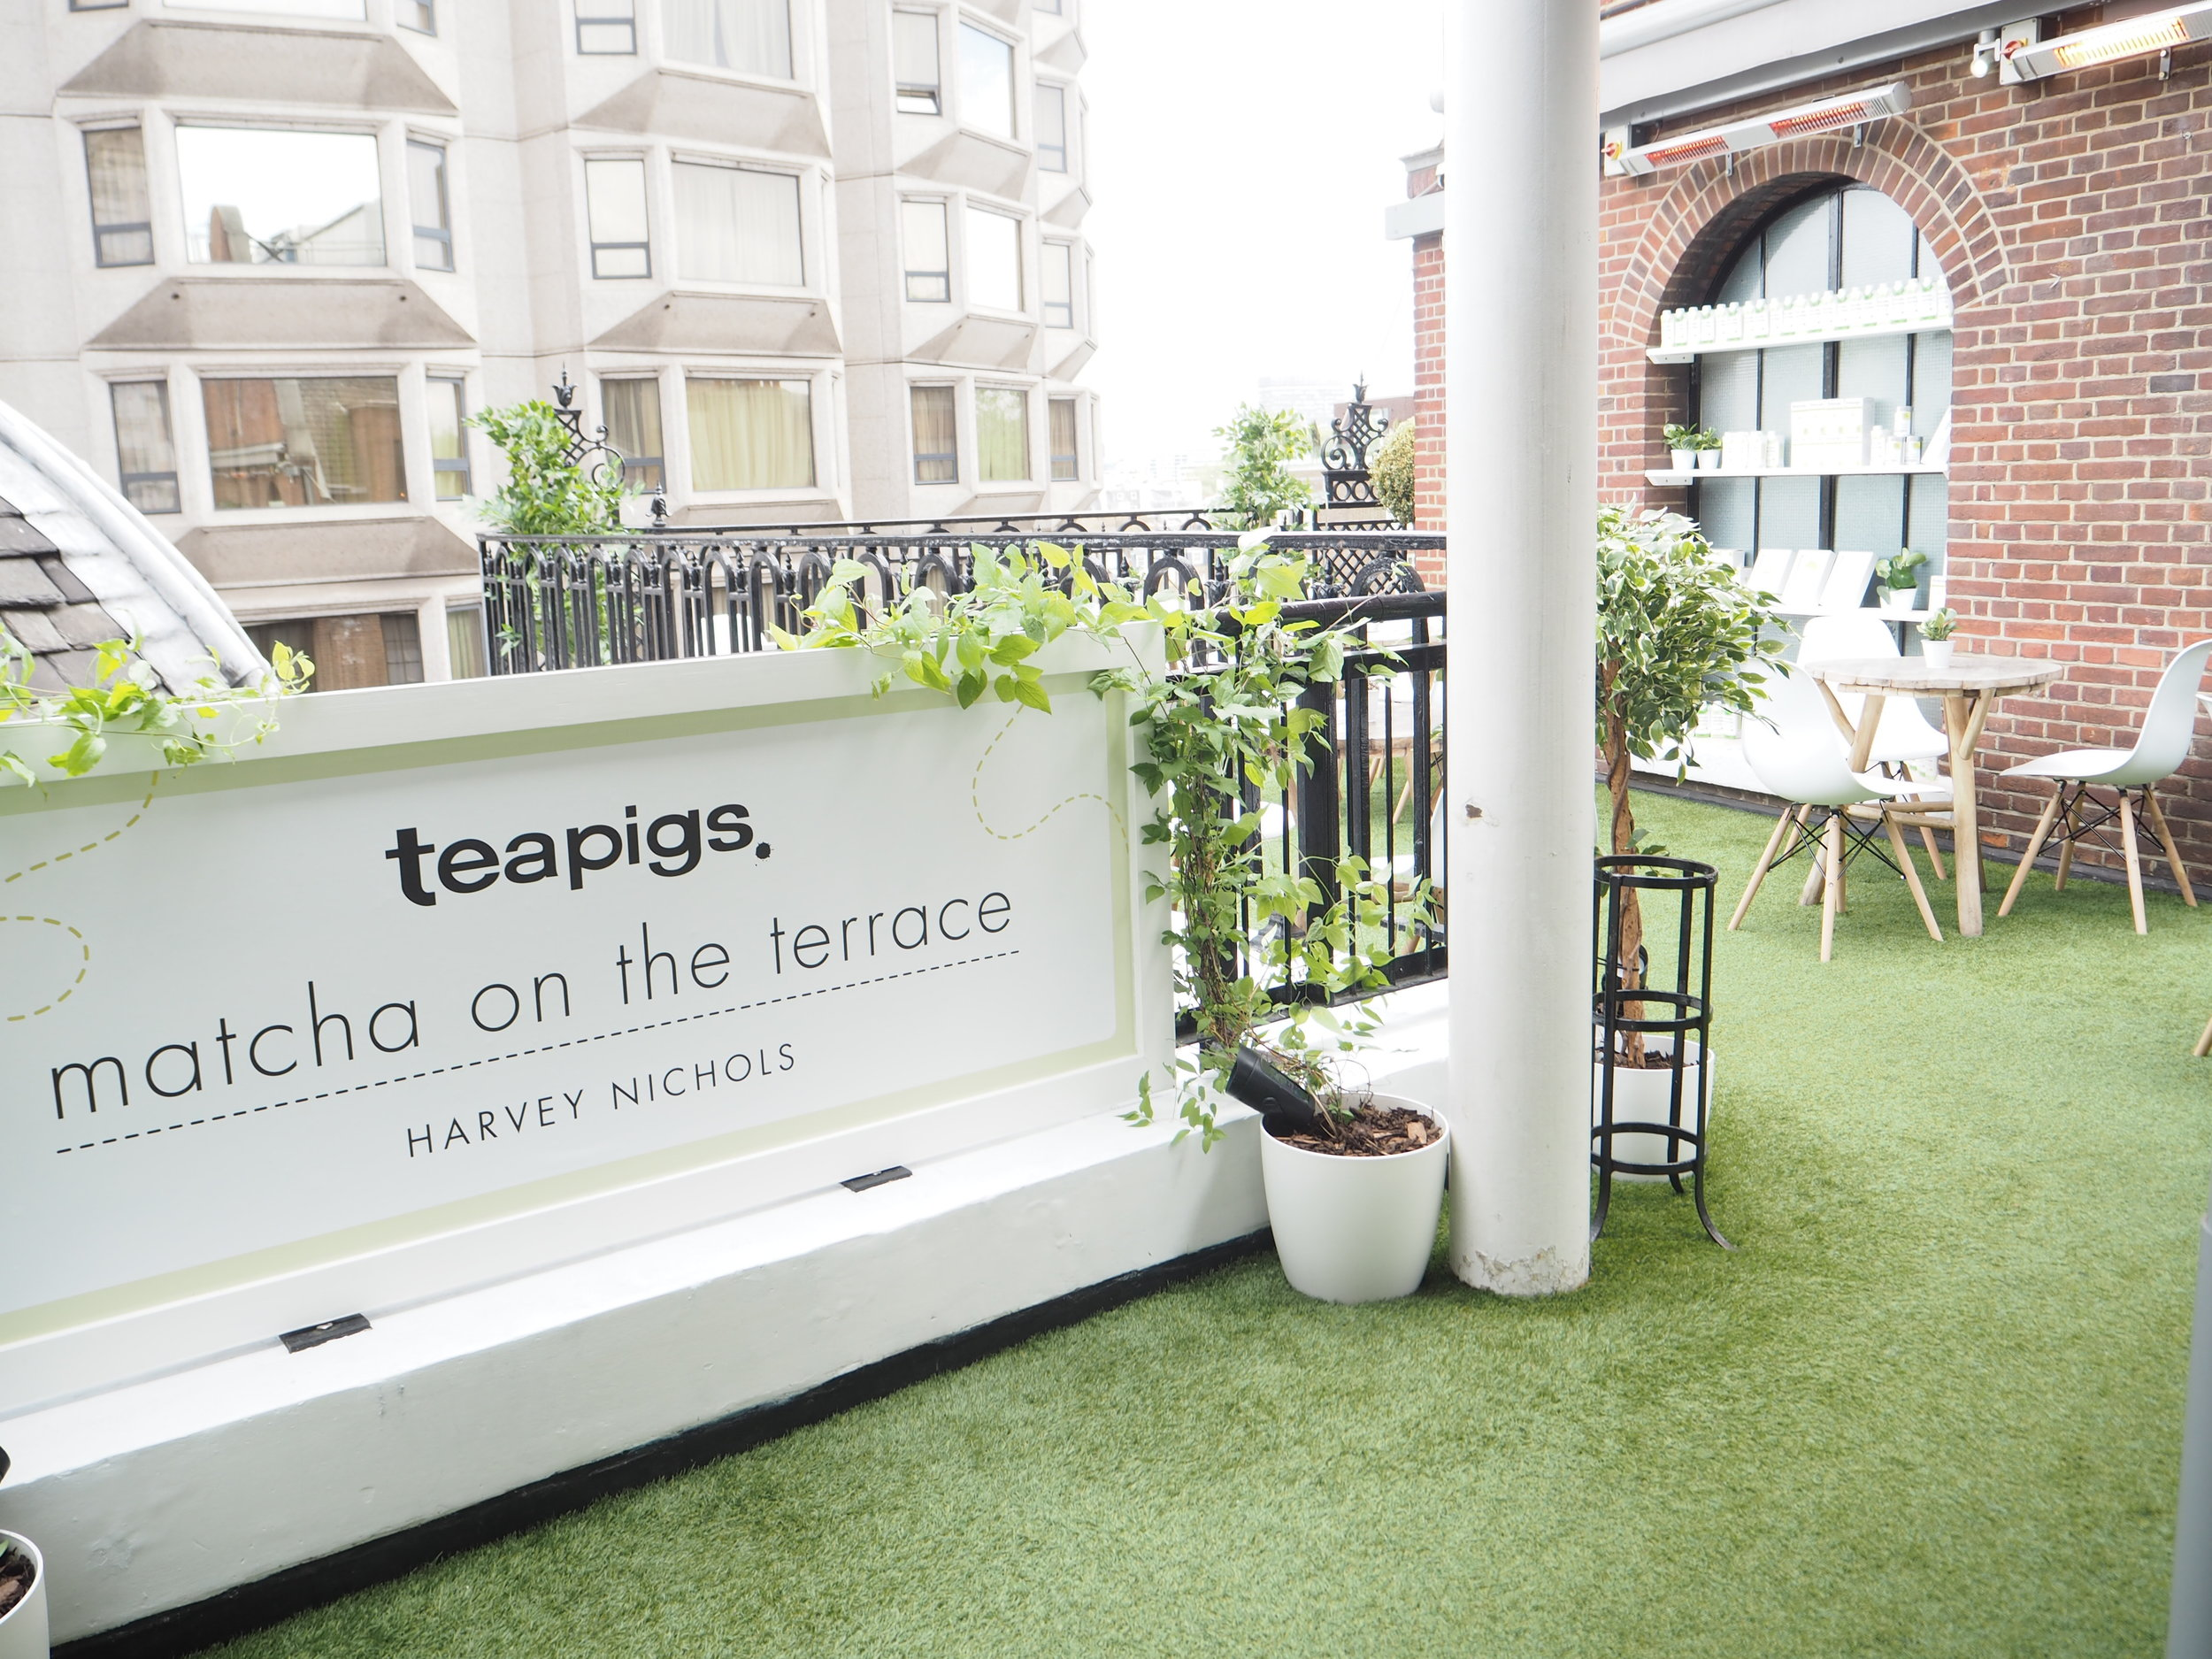 Quirky Group Harvey Nichols Take-over Teapigs Venue Sourcing Services